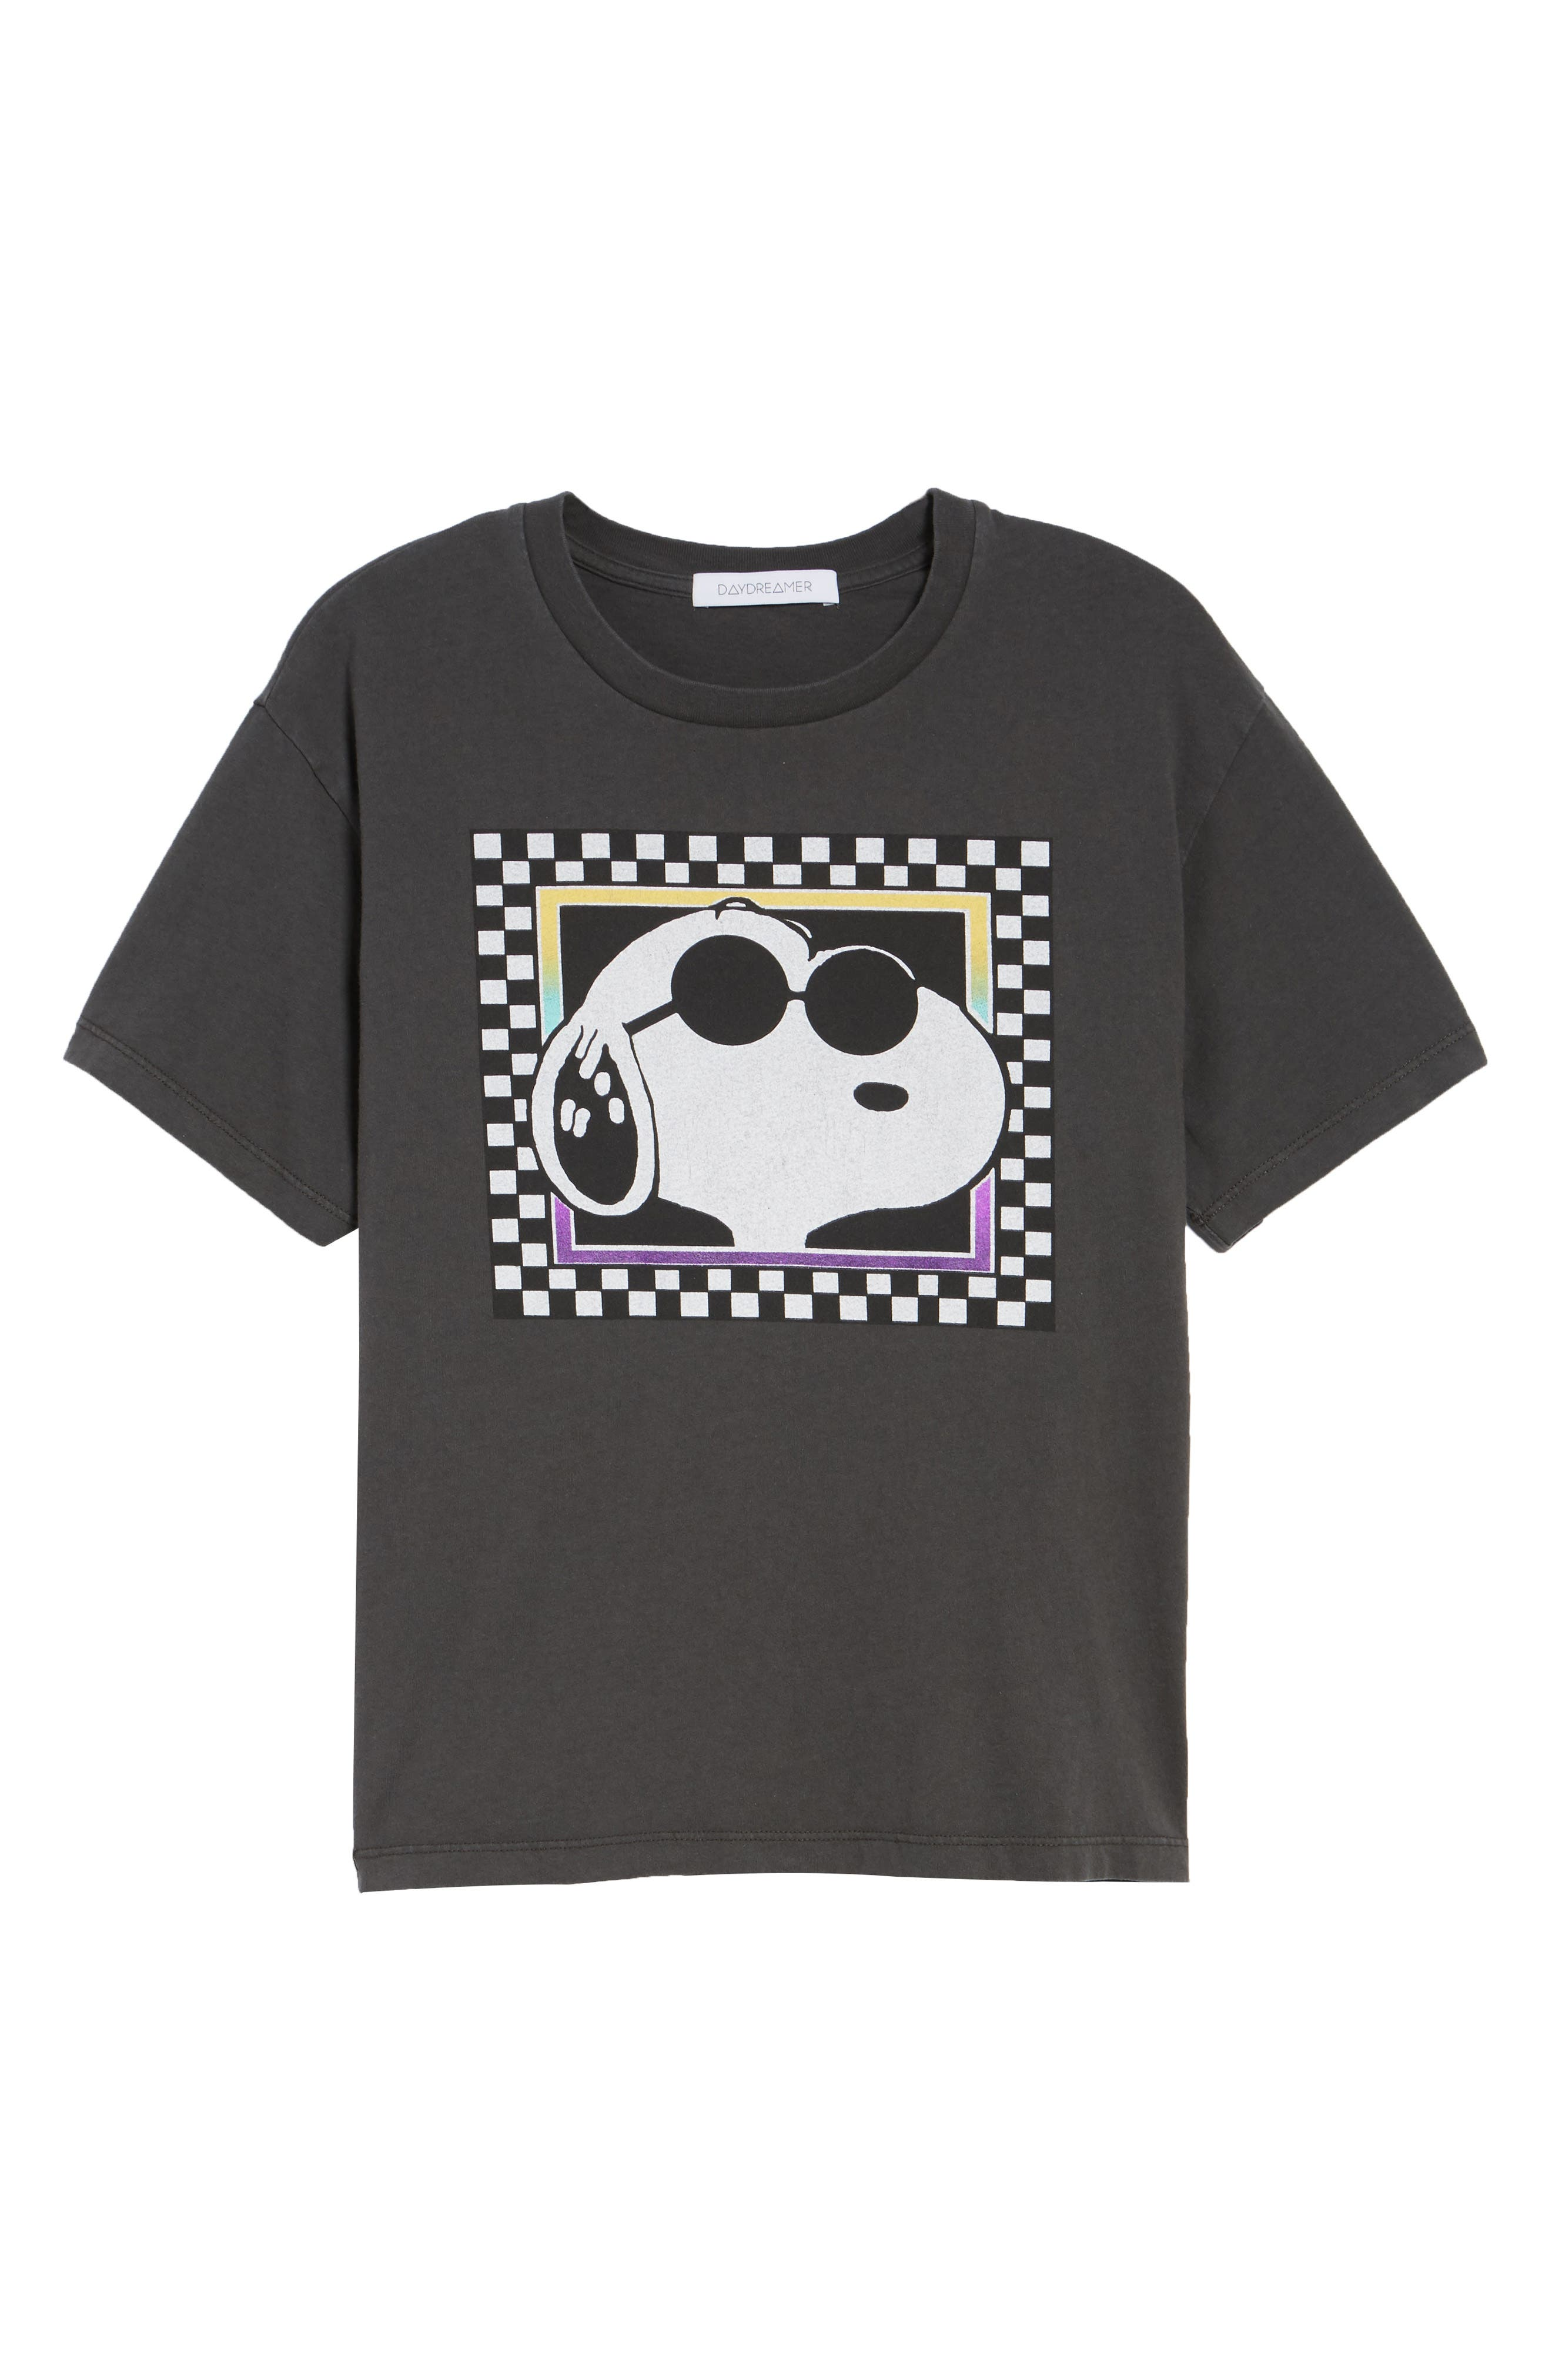 Daydreamer Joe Cool Checkerboard Tee (Limited Edition) (Nordstrom Exclusive)